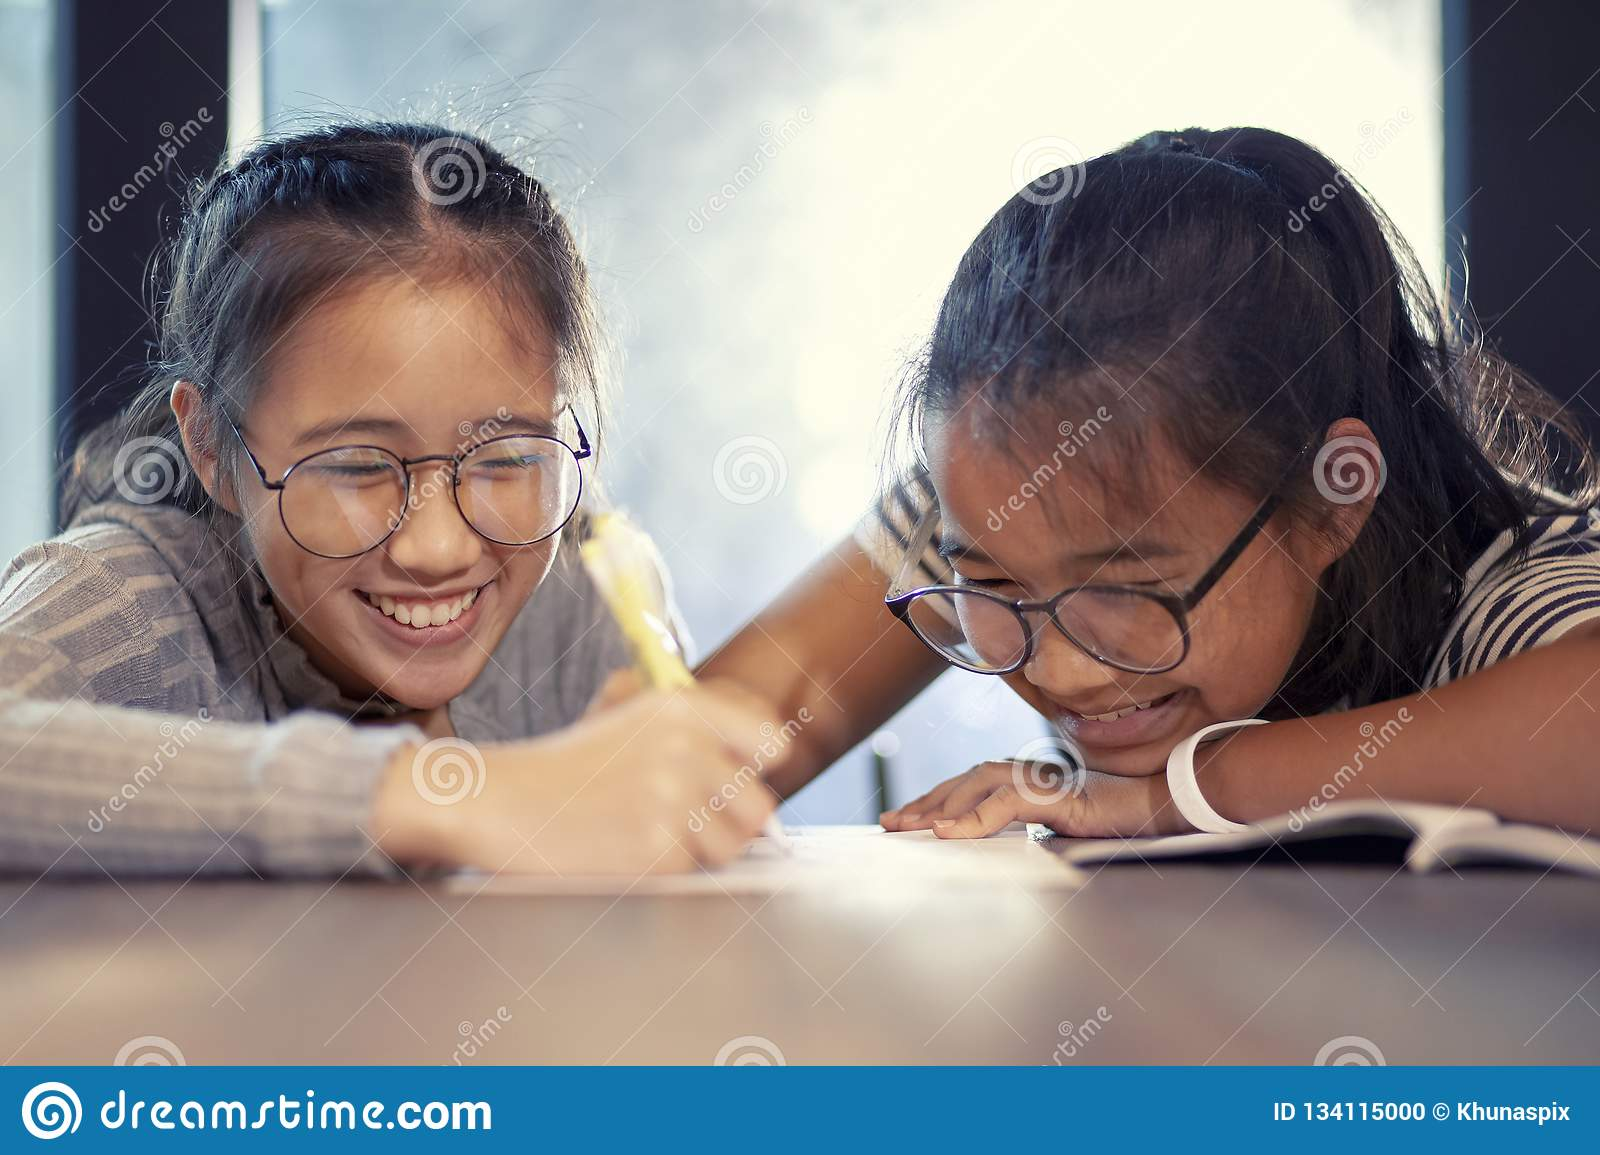 Asian teenager writing by pen on white paper and toothy smiling with happiness emotion